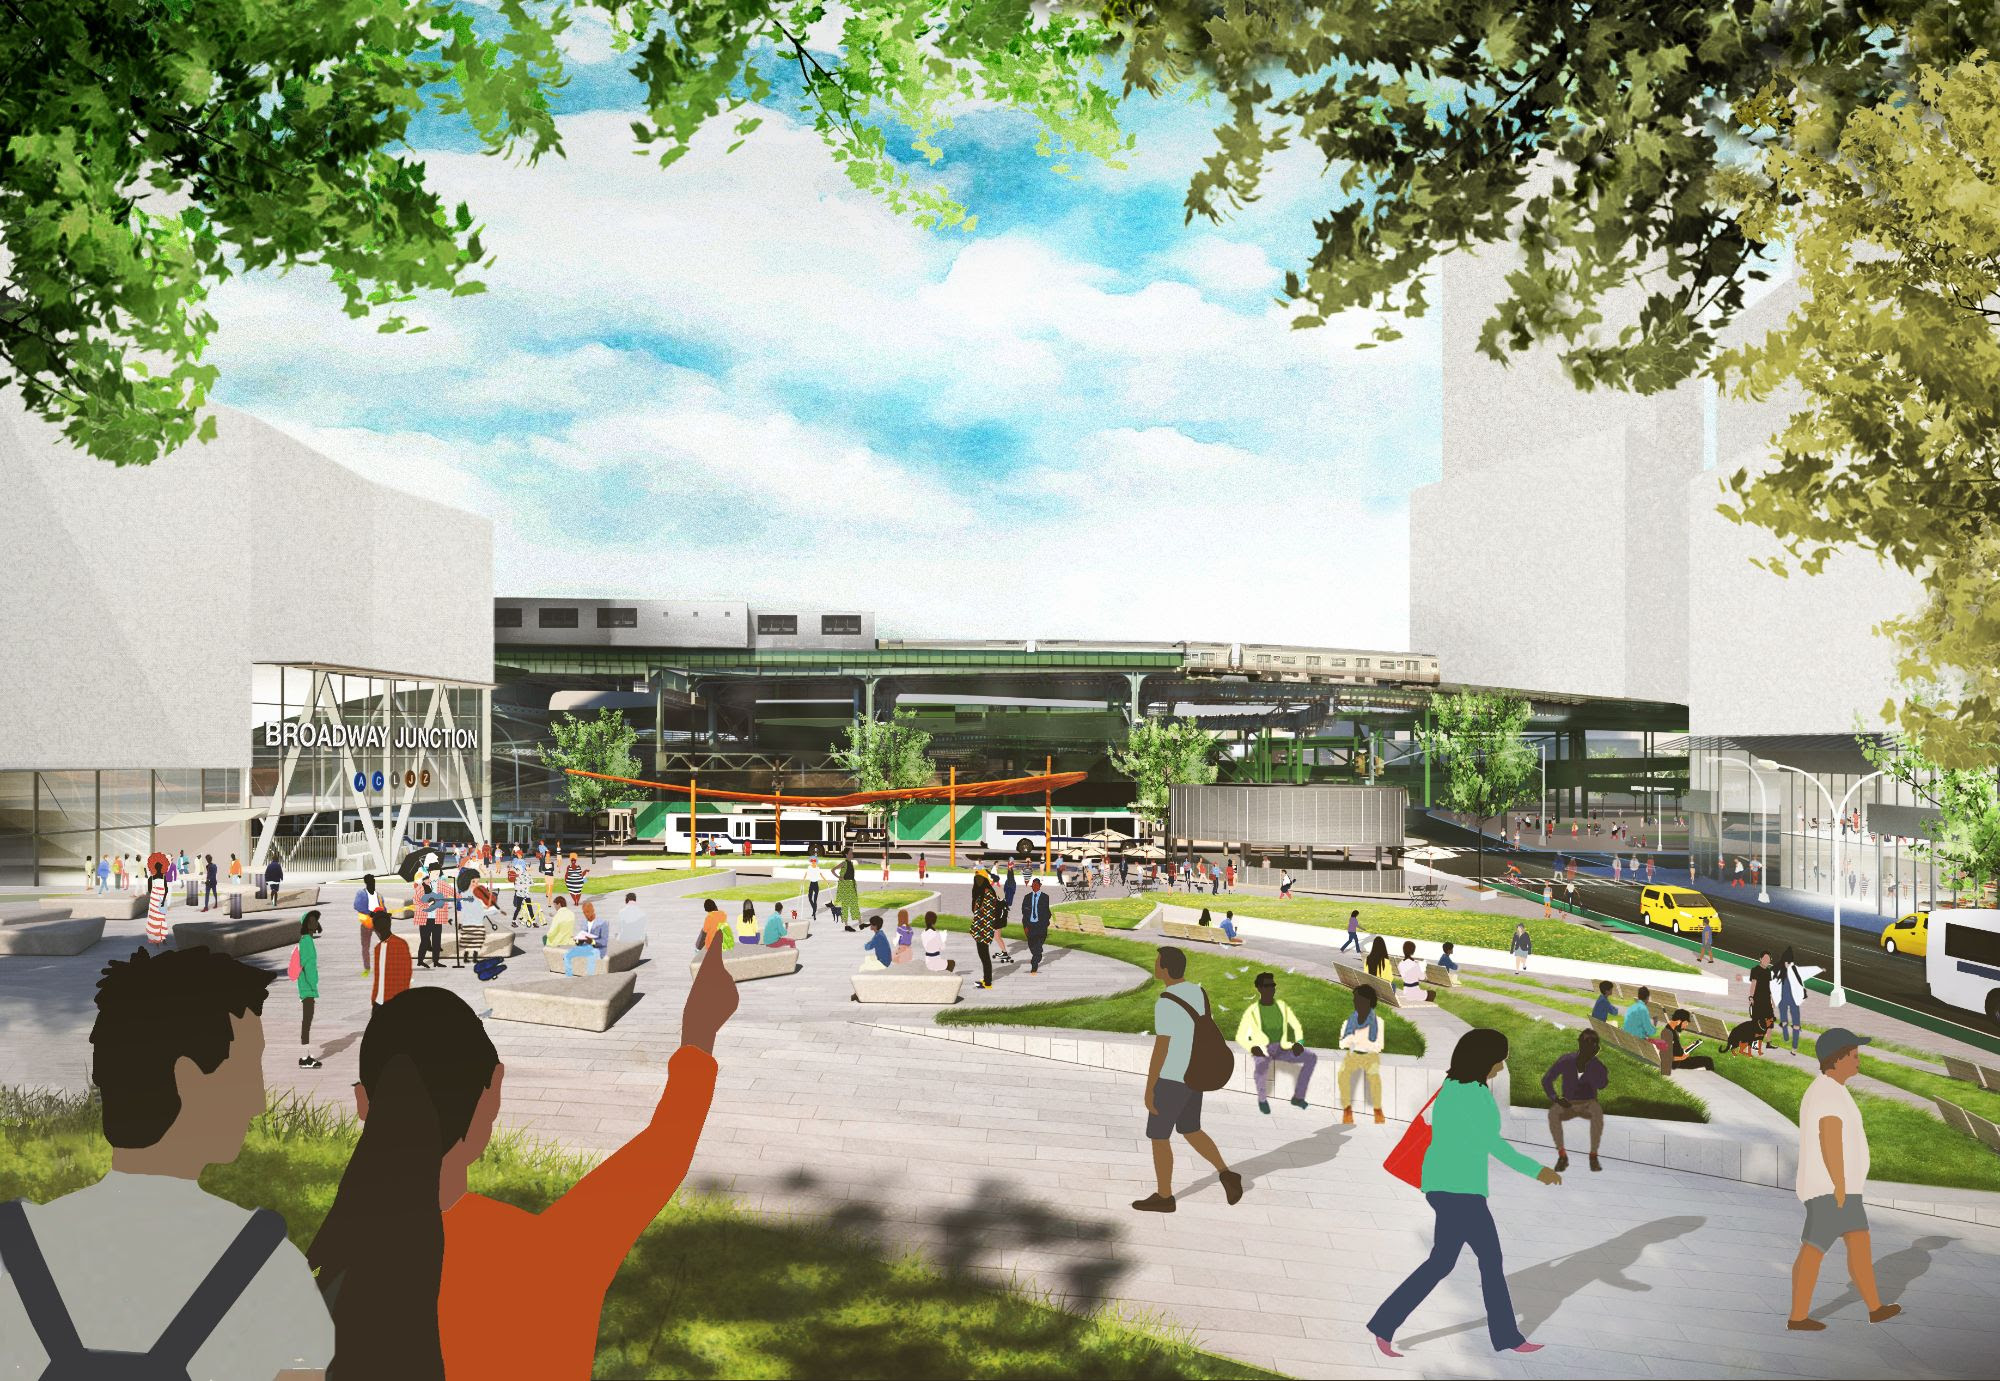 The future of Broadway Junction: An accessible, community-driven transit hub